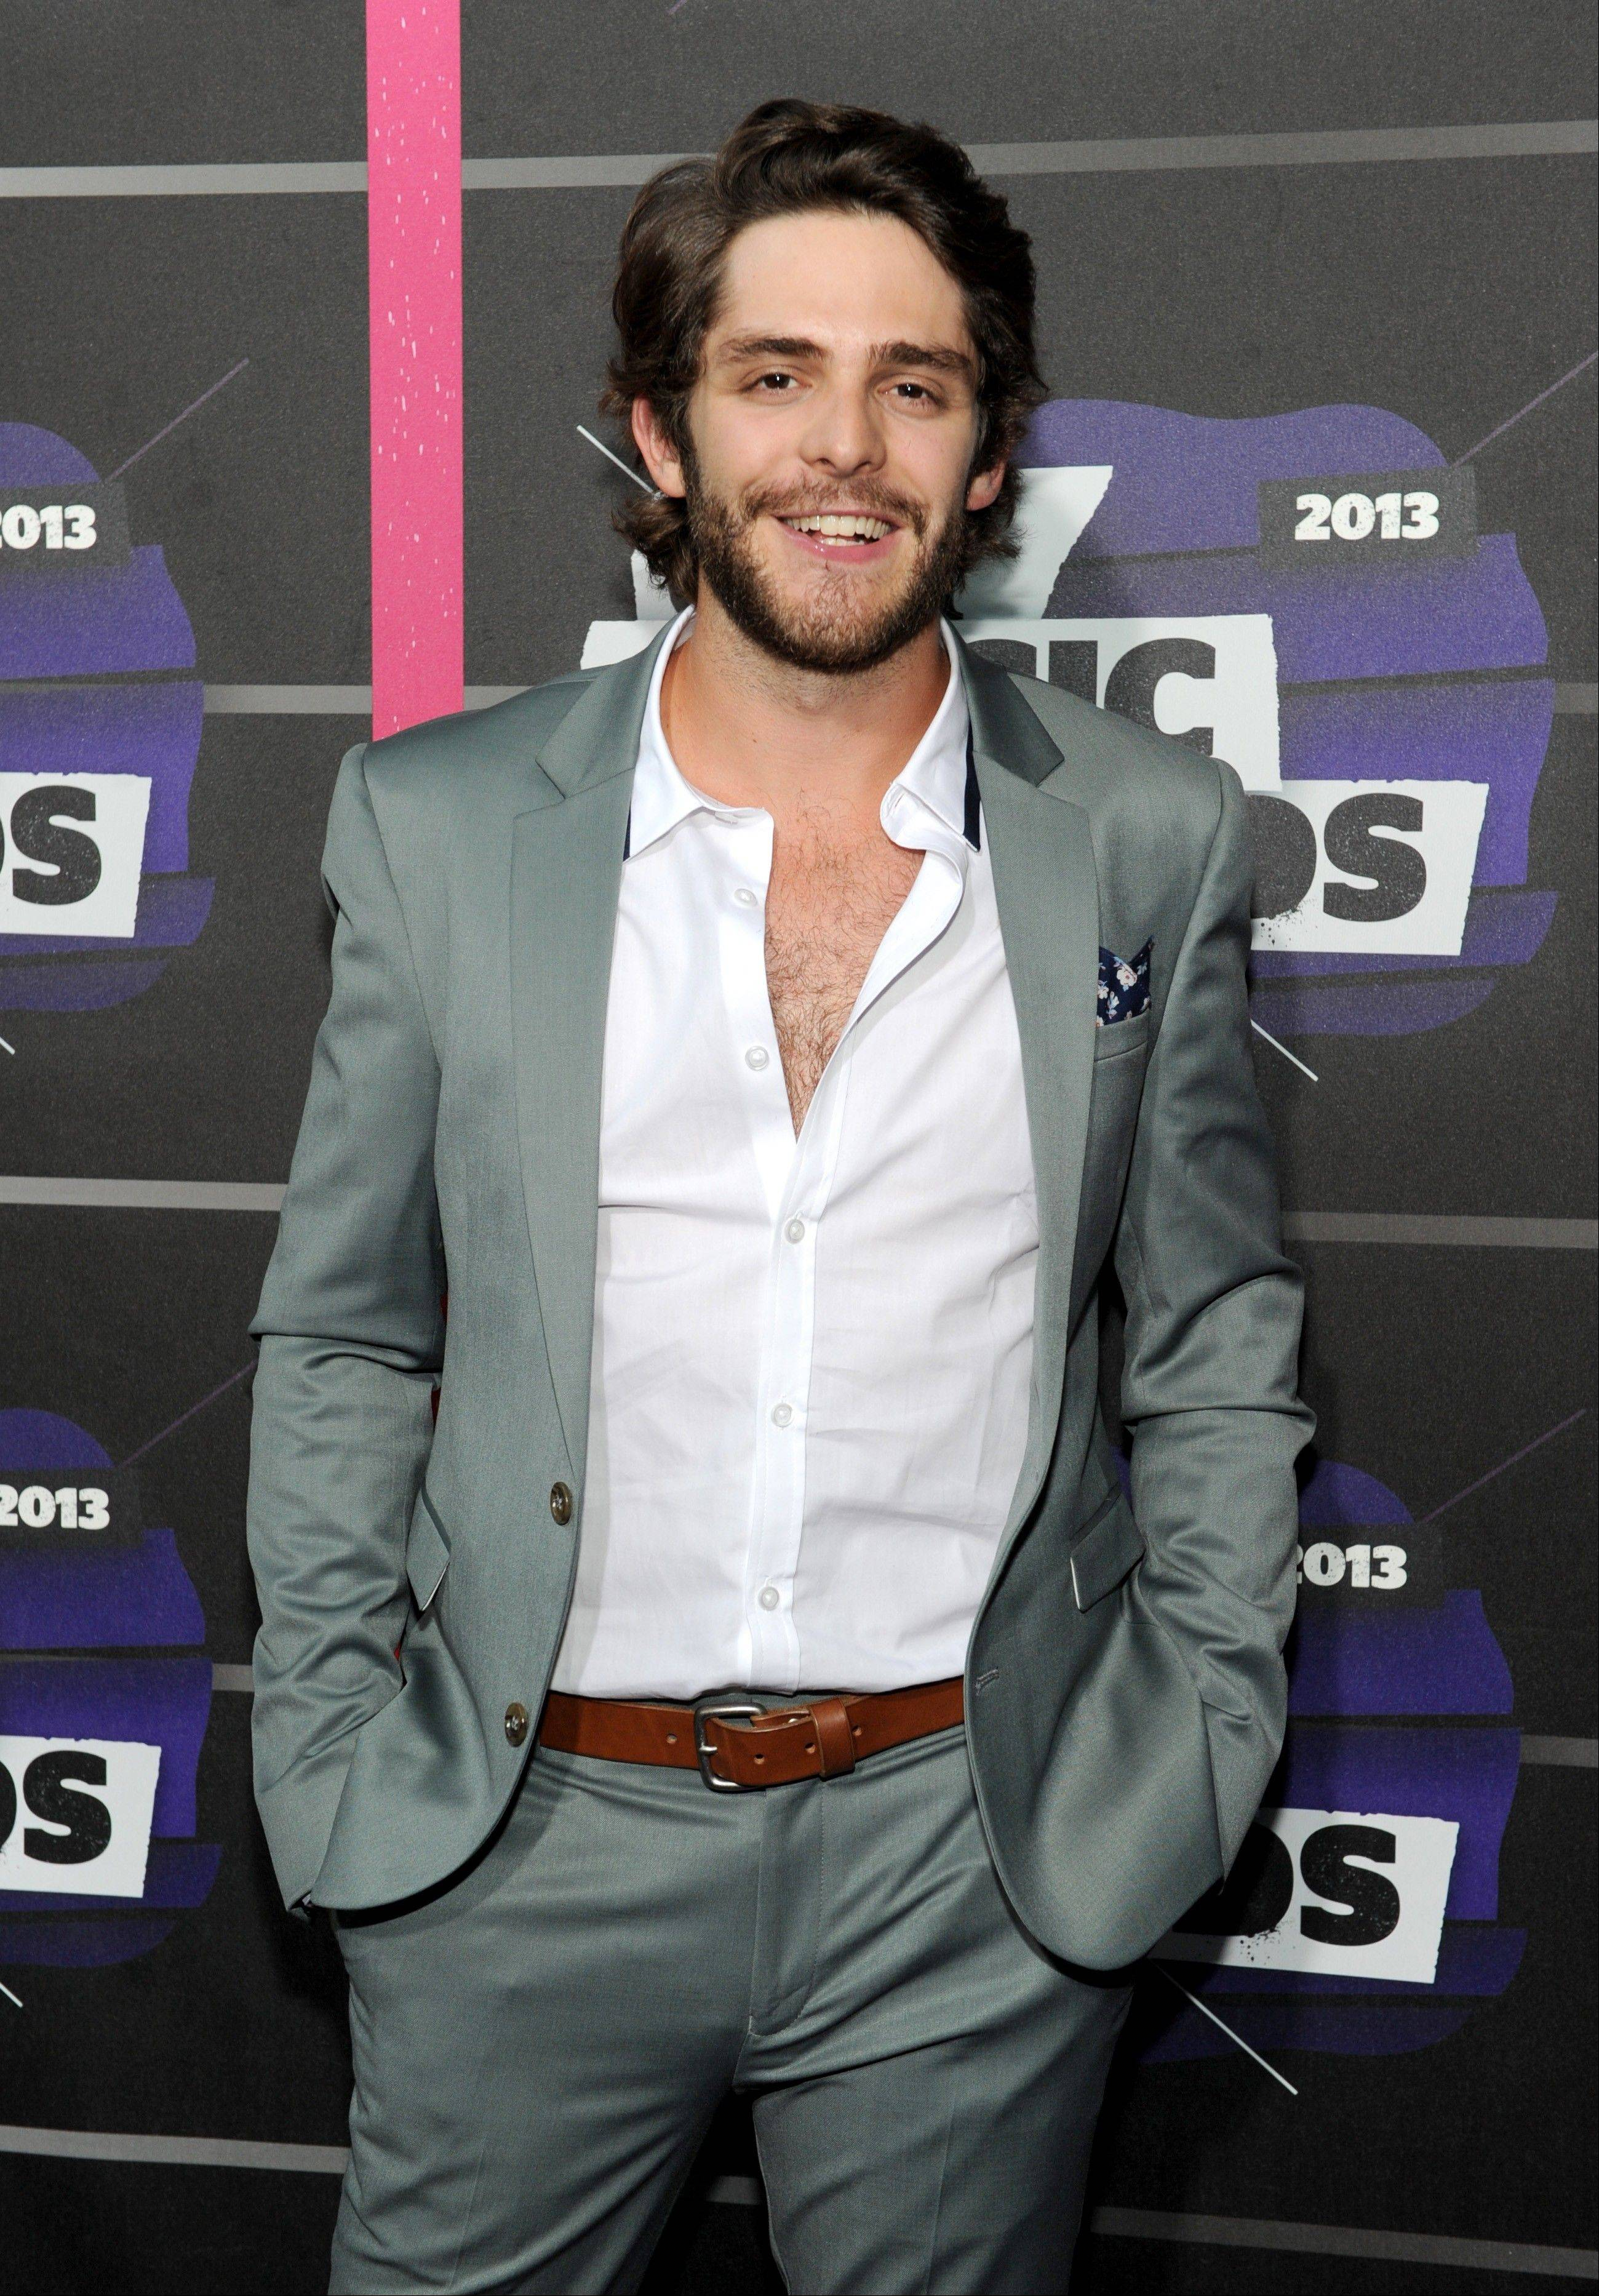 Thomas Rhett, whose full name is Thomas Rhett Akins Jr., grew up in the limelight of his father's success, even appearing on television and on stage singing songs with his dad, Rhett Akins. The father and son songwriters managed to get credits on five of the top 10 songs on country radio in early October 2013.